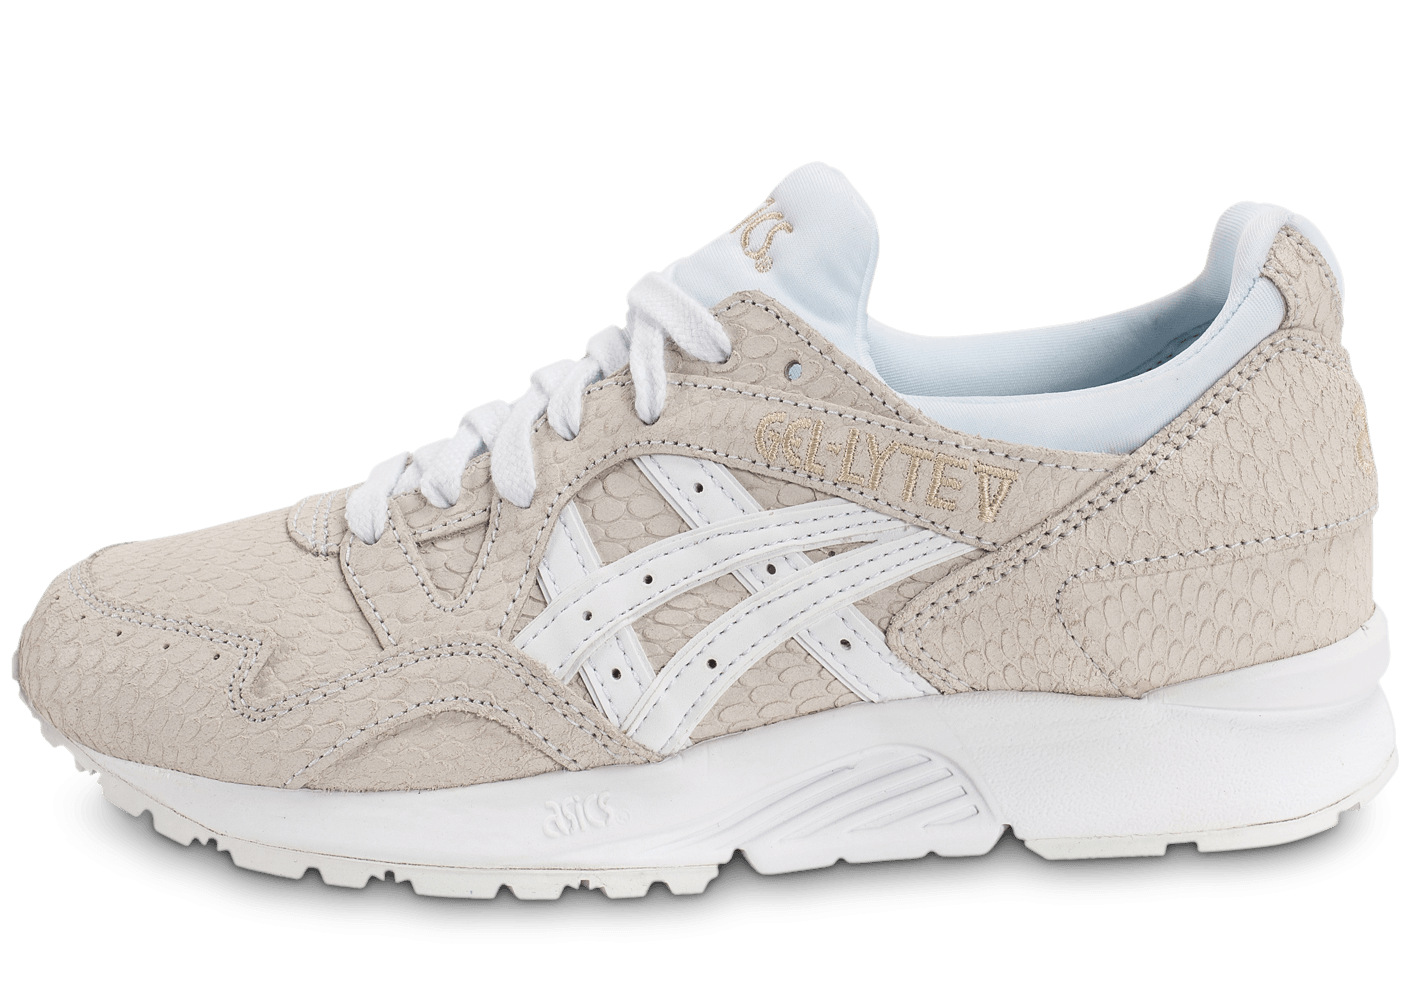 Asics blanche solde for Moquette blanche pas cher